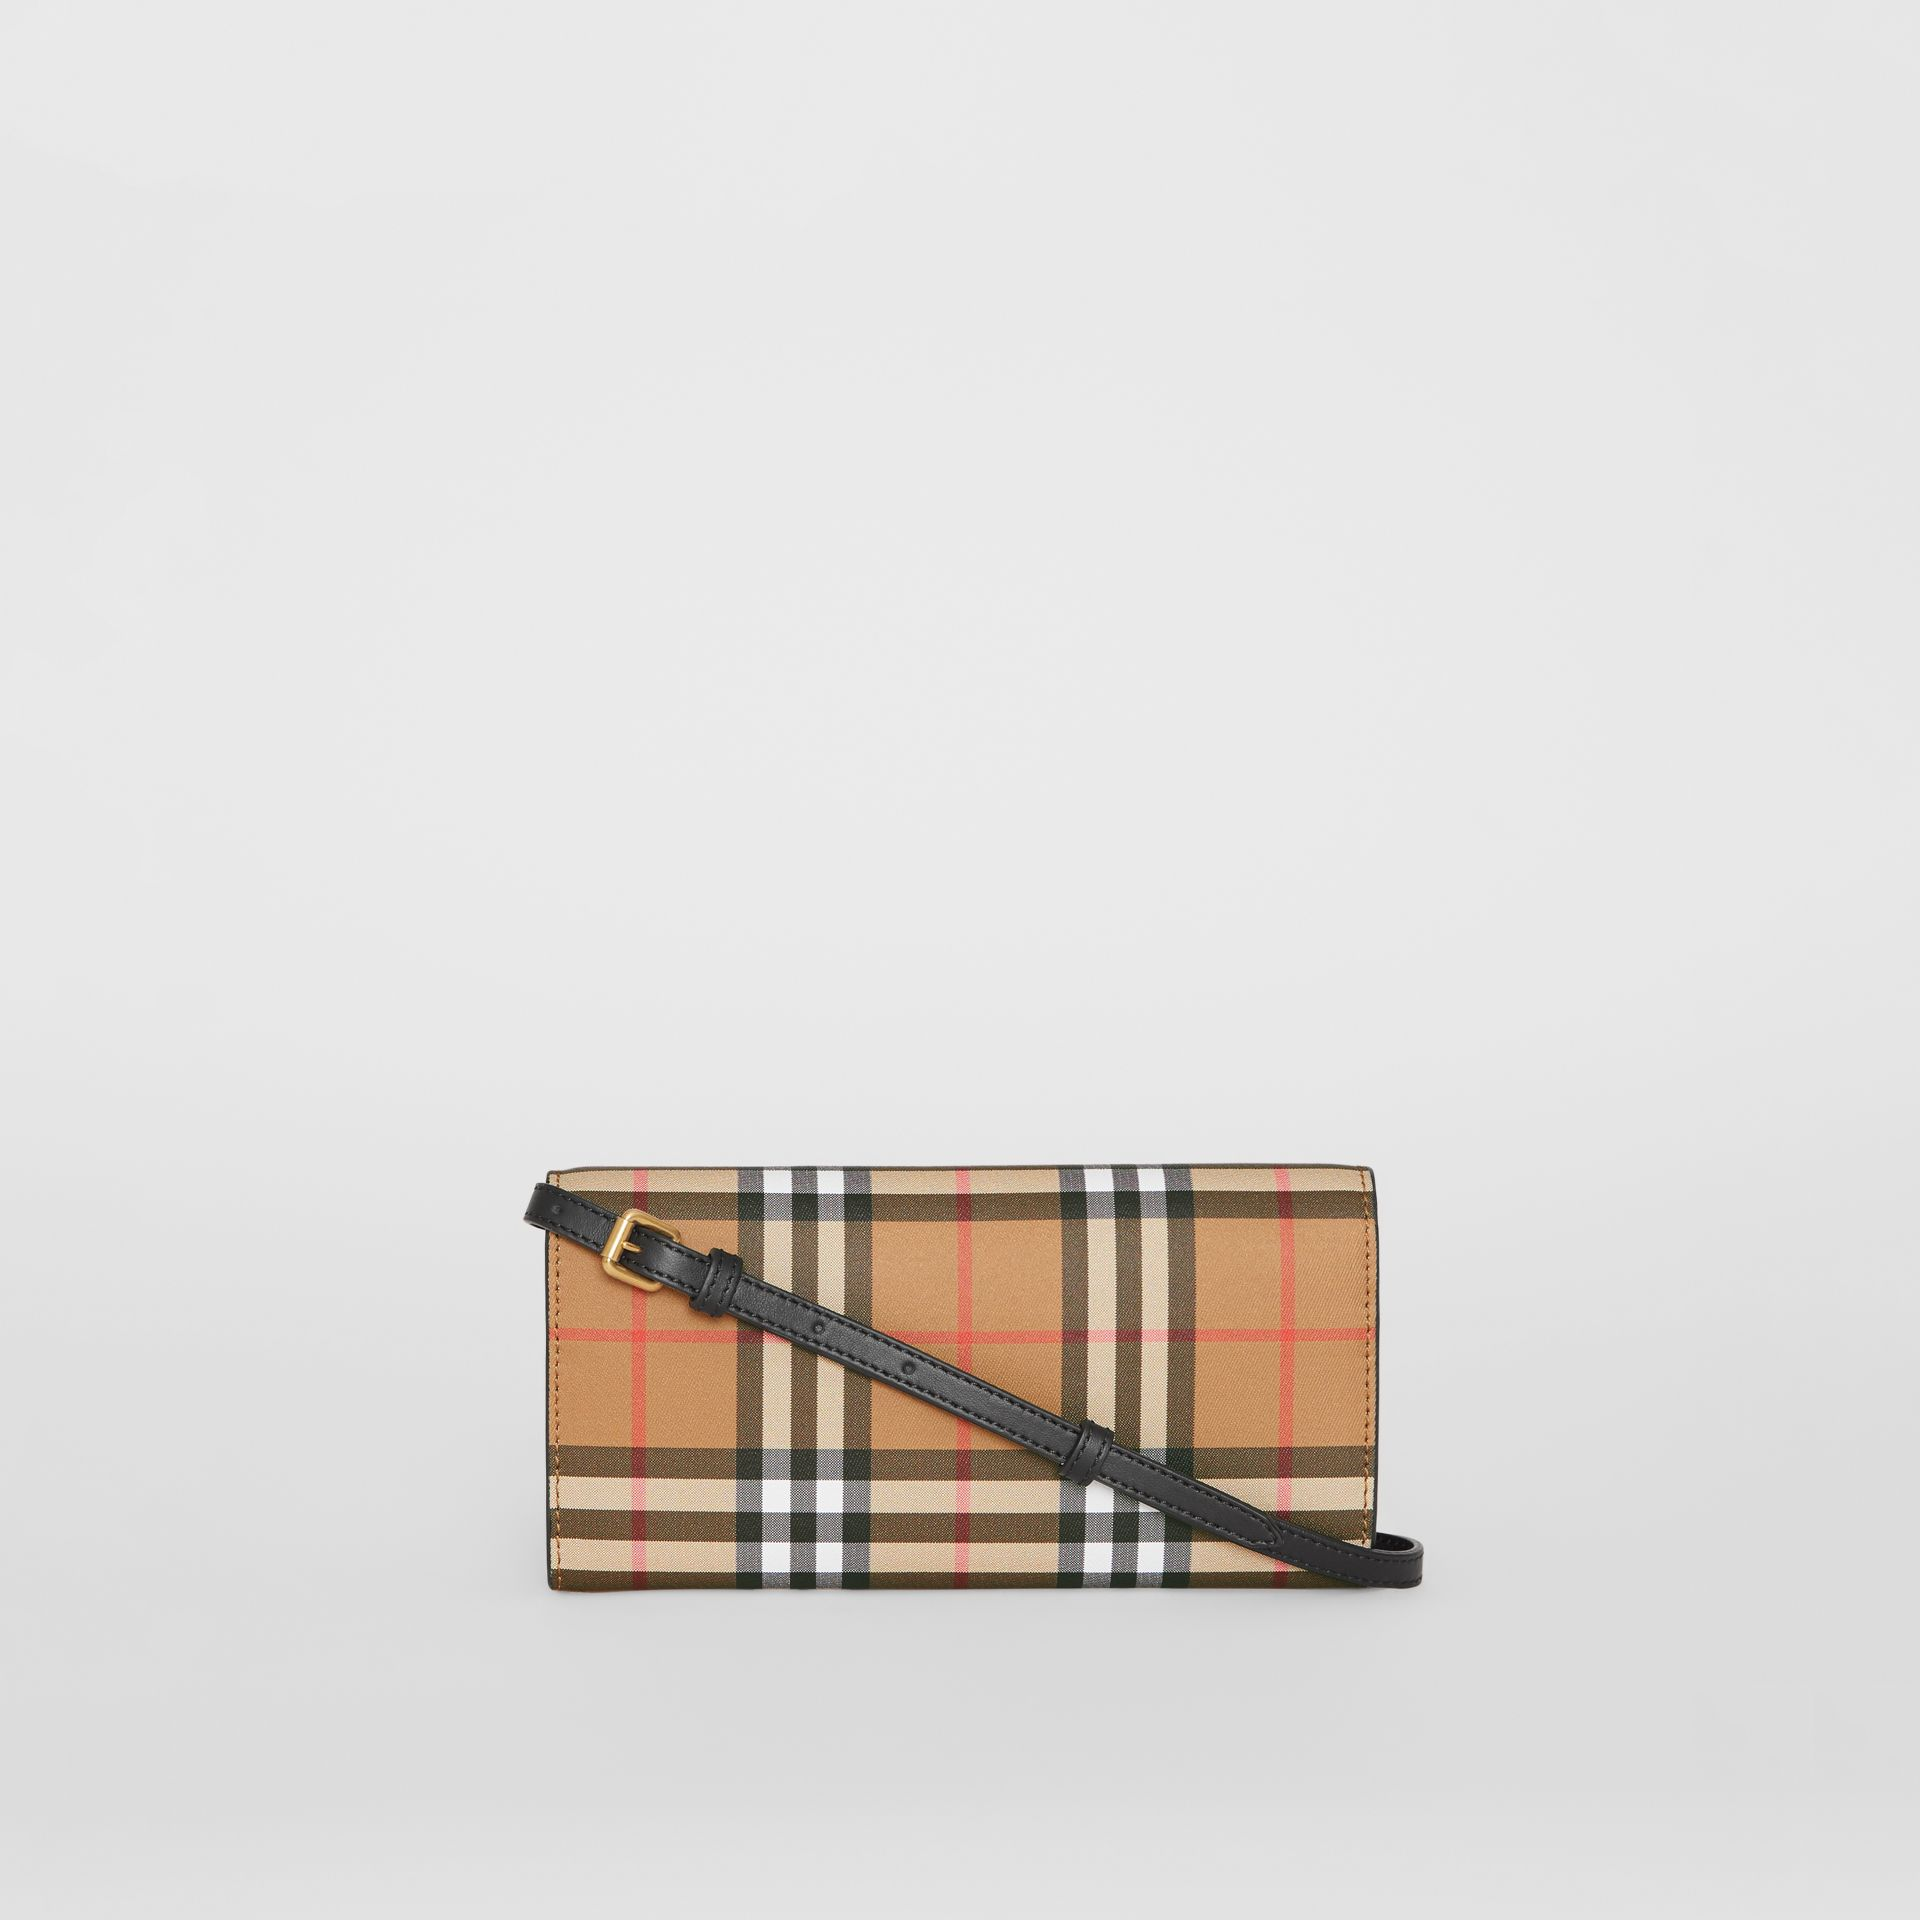 Detachable Strap Vintage Check Leather Wallet in Black - Women | Burberry Hong Kong - gallery image 7